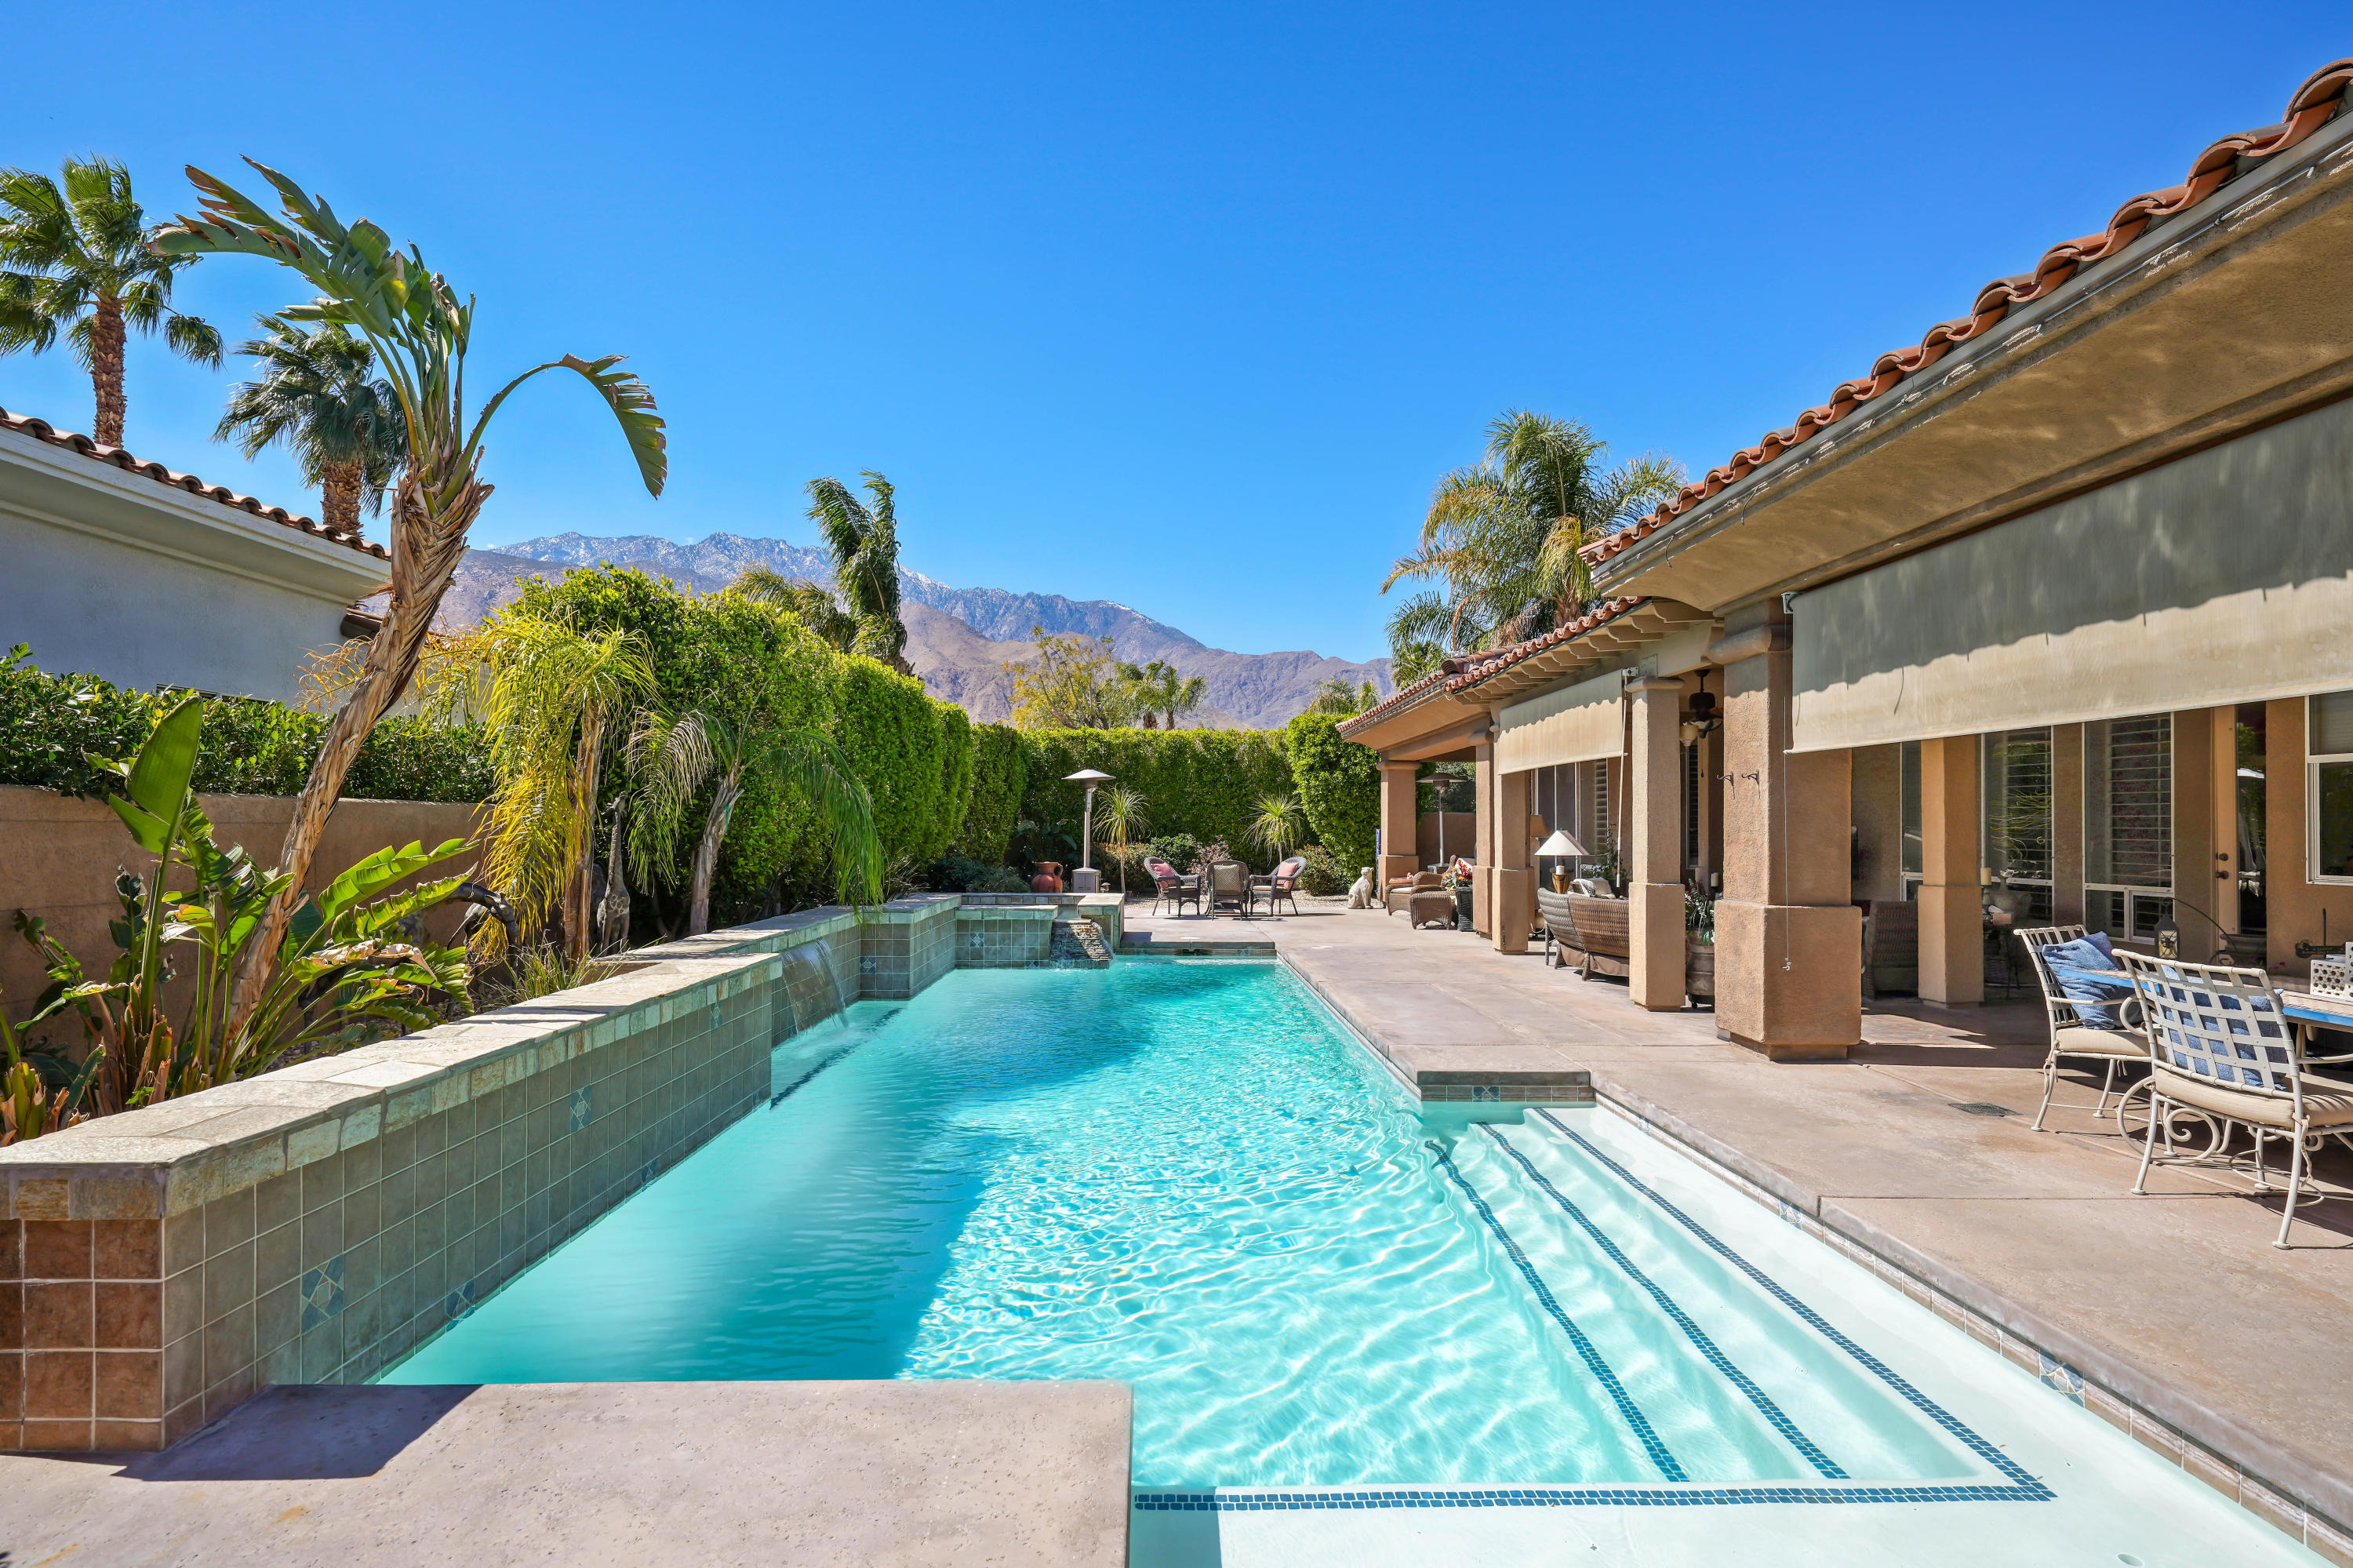 Photo of 1209 Verdugo Road, Palm Springs, CA 92262